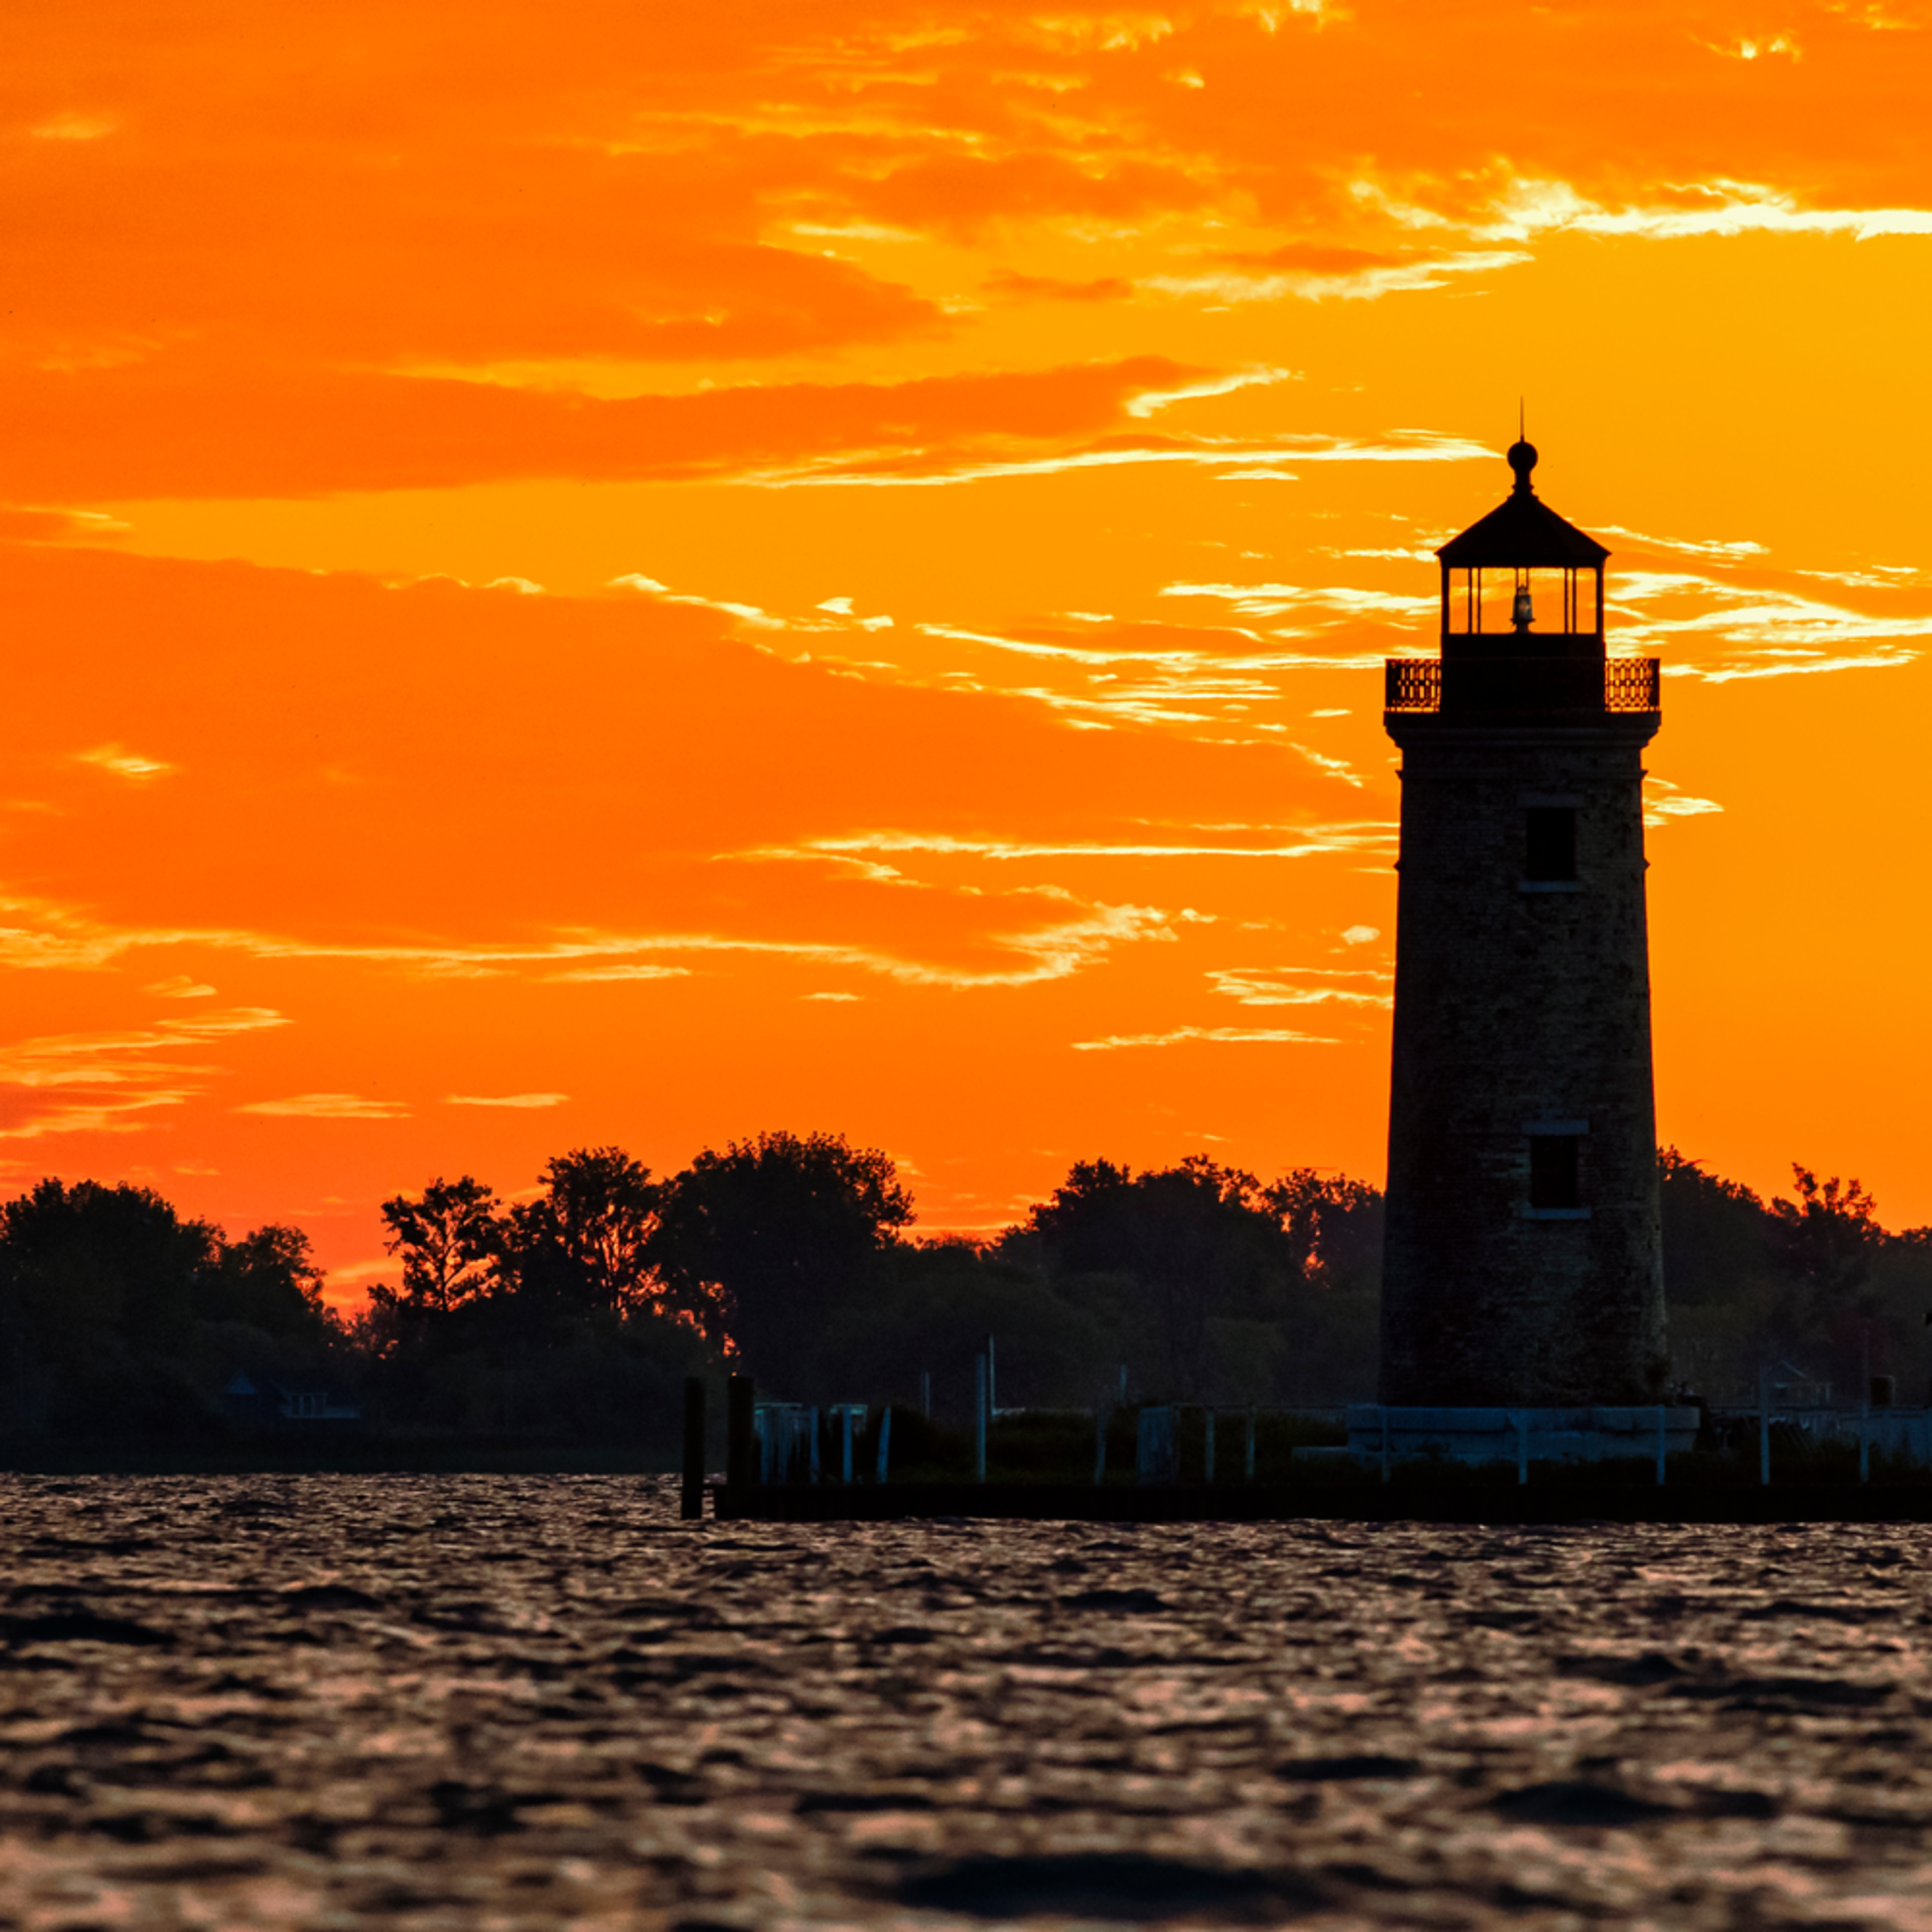 Andy crawford photography lake st clair river lighthouse pastel sunrise bslokj